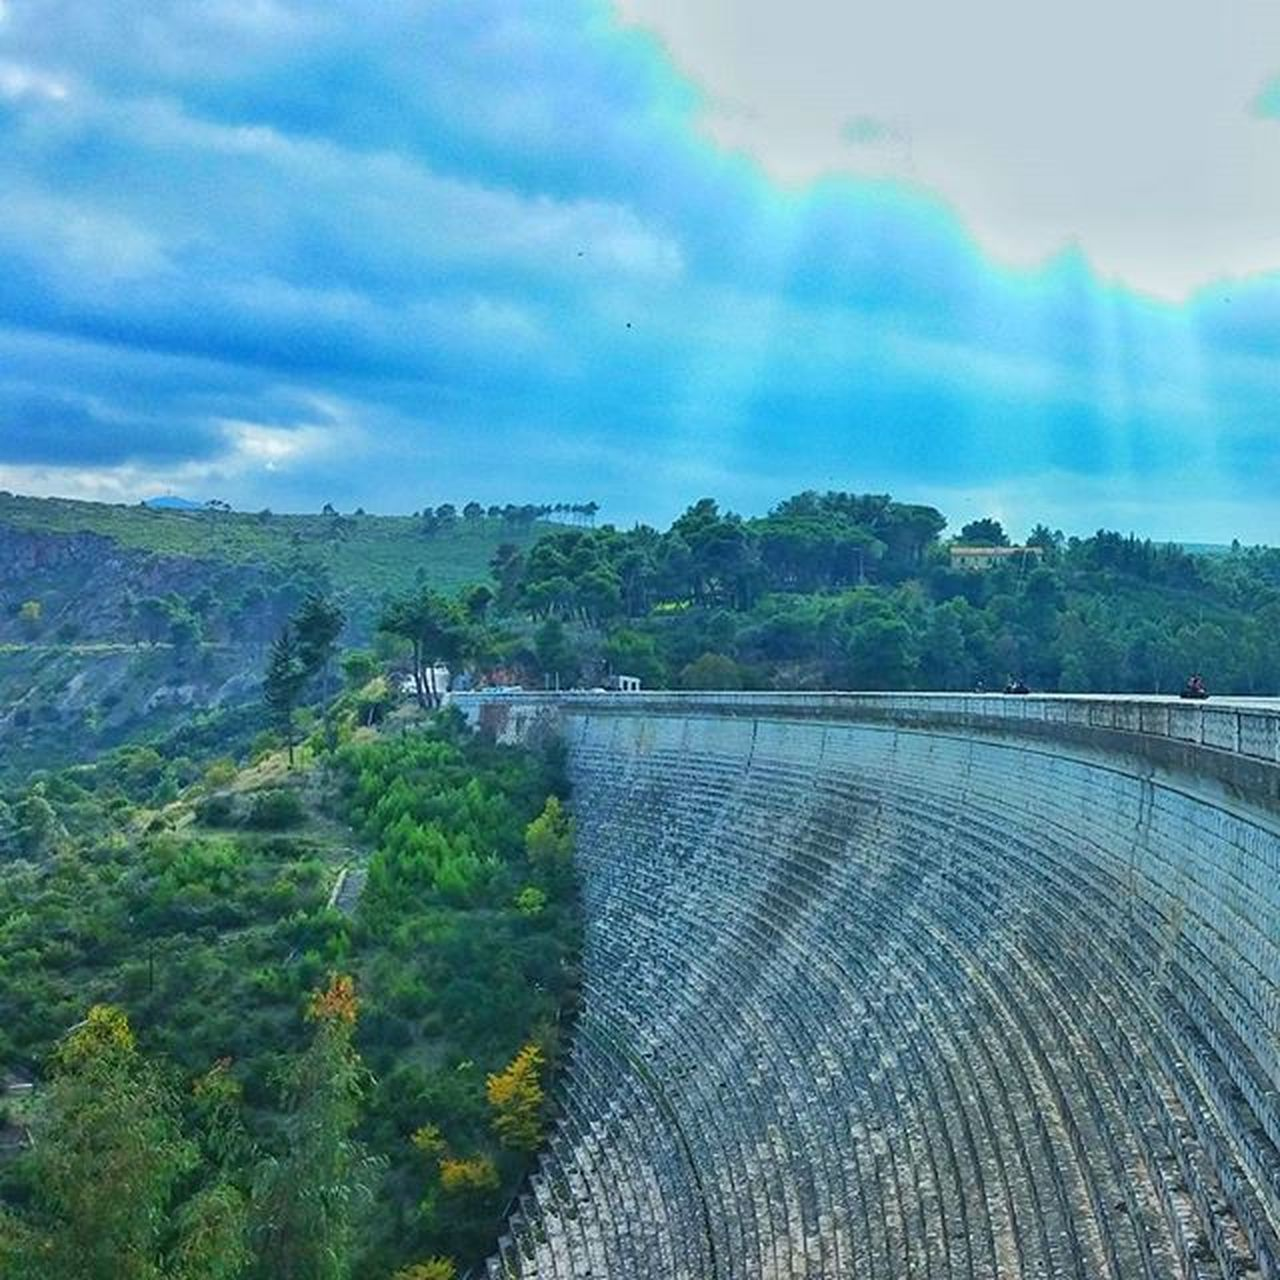 hydroelectric power, dam, renewable energy, water, fuel and power generation, built structure, architecture, alternative energy, no people, scenics, sky, day, outdoors, nature, beauty in nature, river, cloud - sky, mountain, motion, tree, power in nature, irrigation equipment